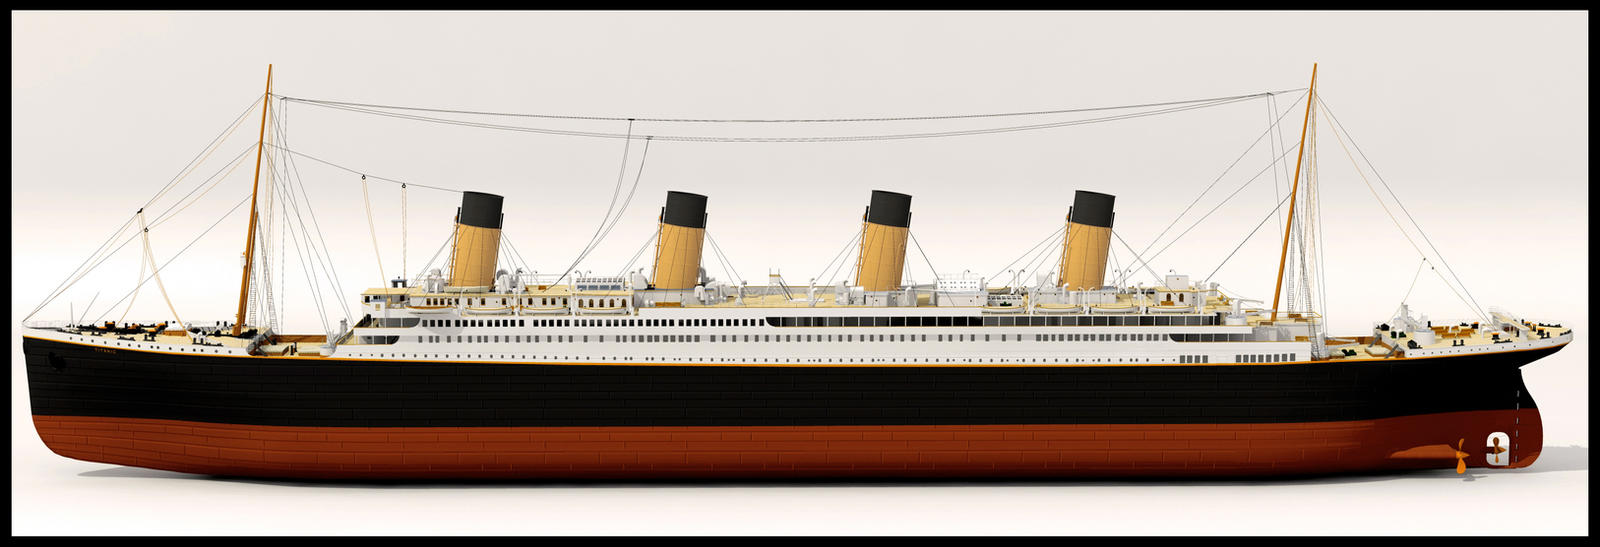 RMS Titanic 3d model by WaskoGM on DeviantArt